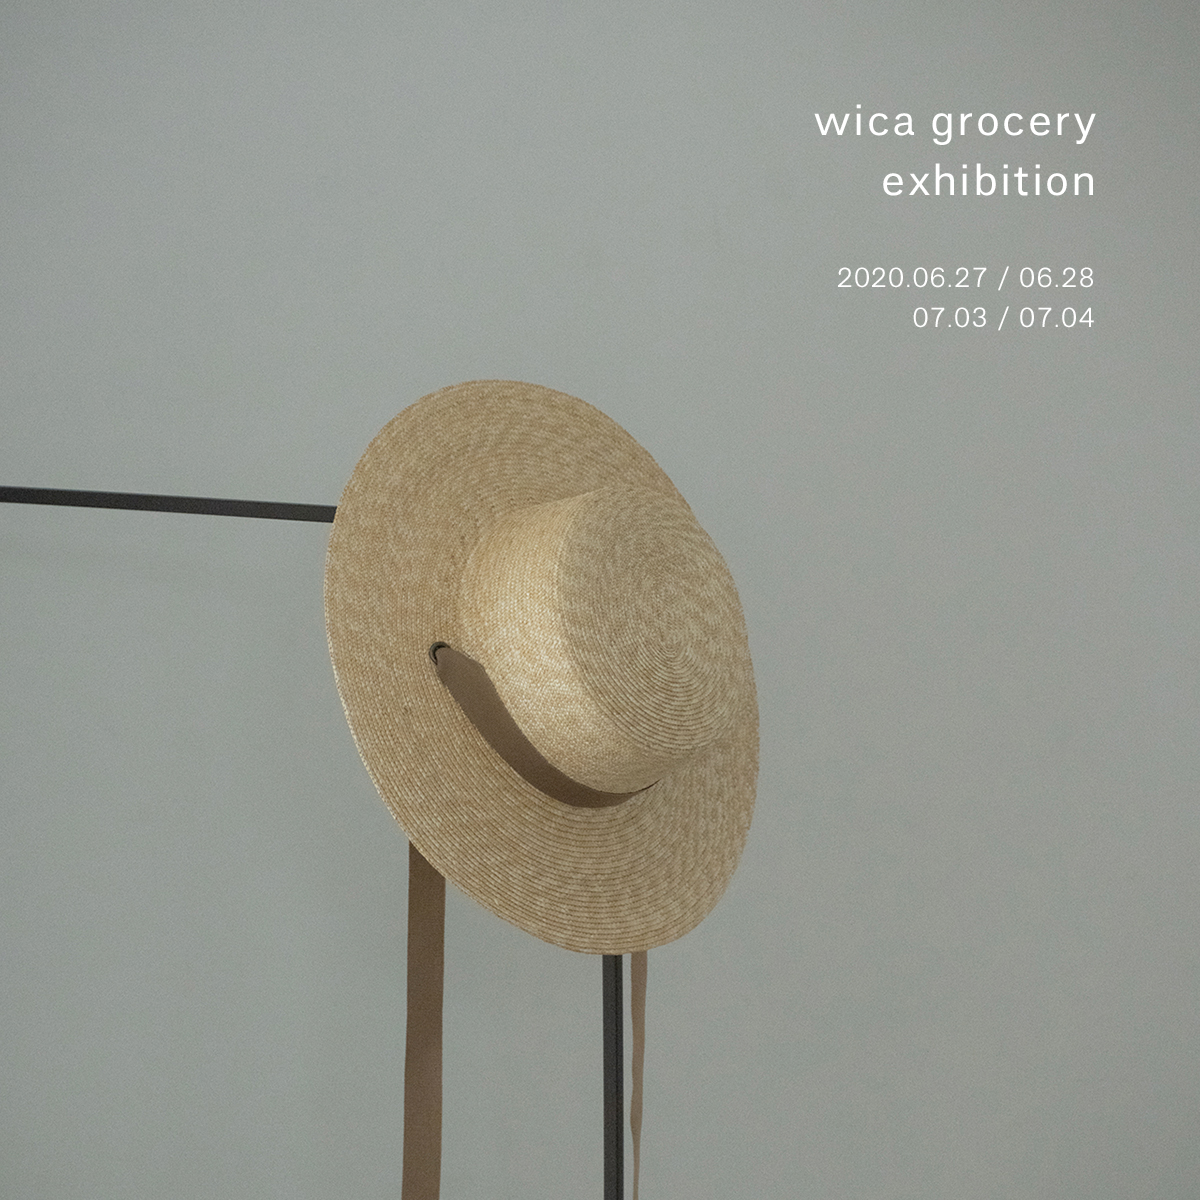 【wica grocery exhibition】06.27 / 06.28 / 07.03 / 07.04